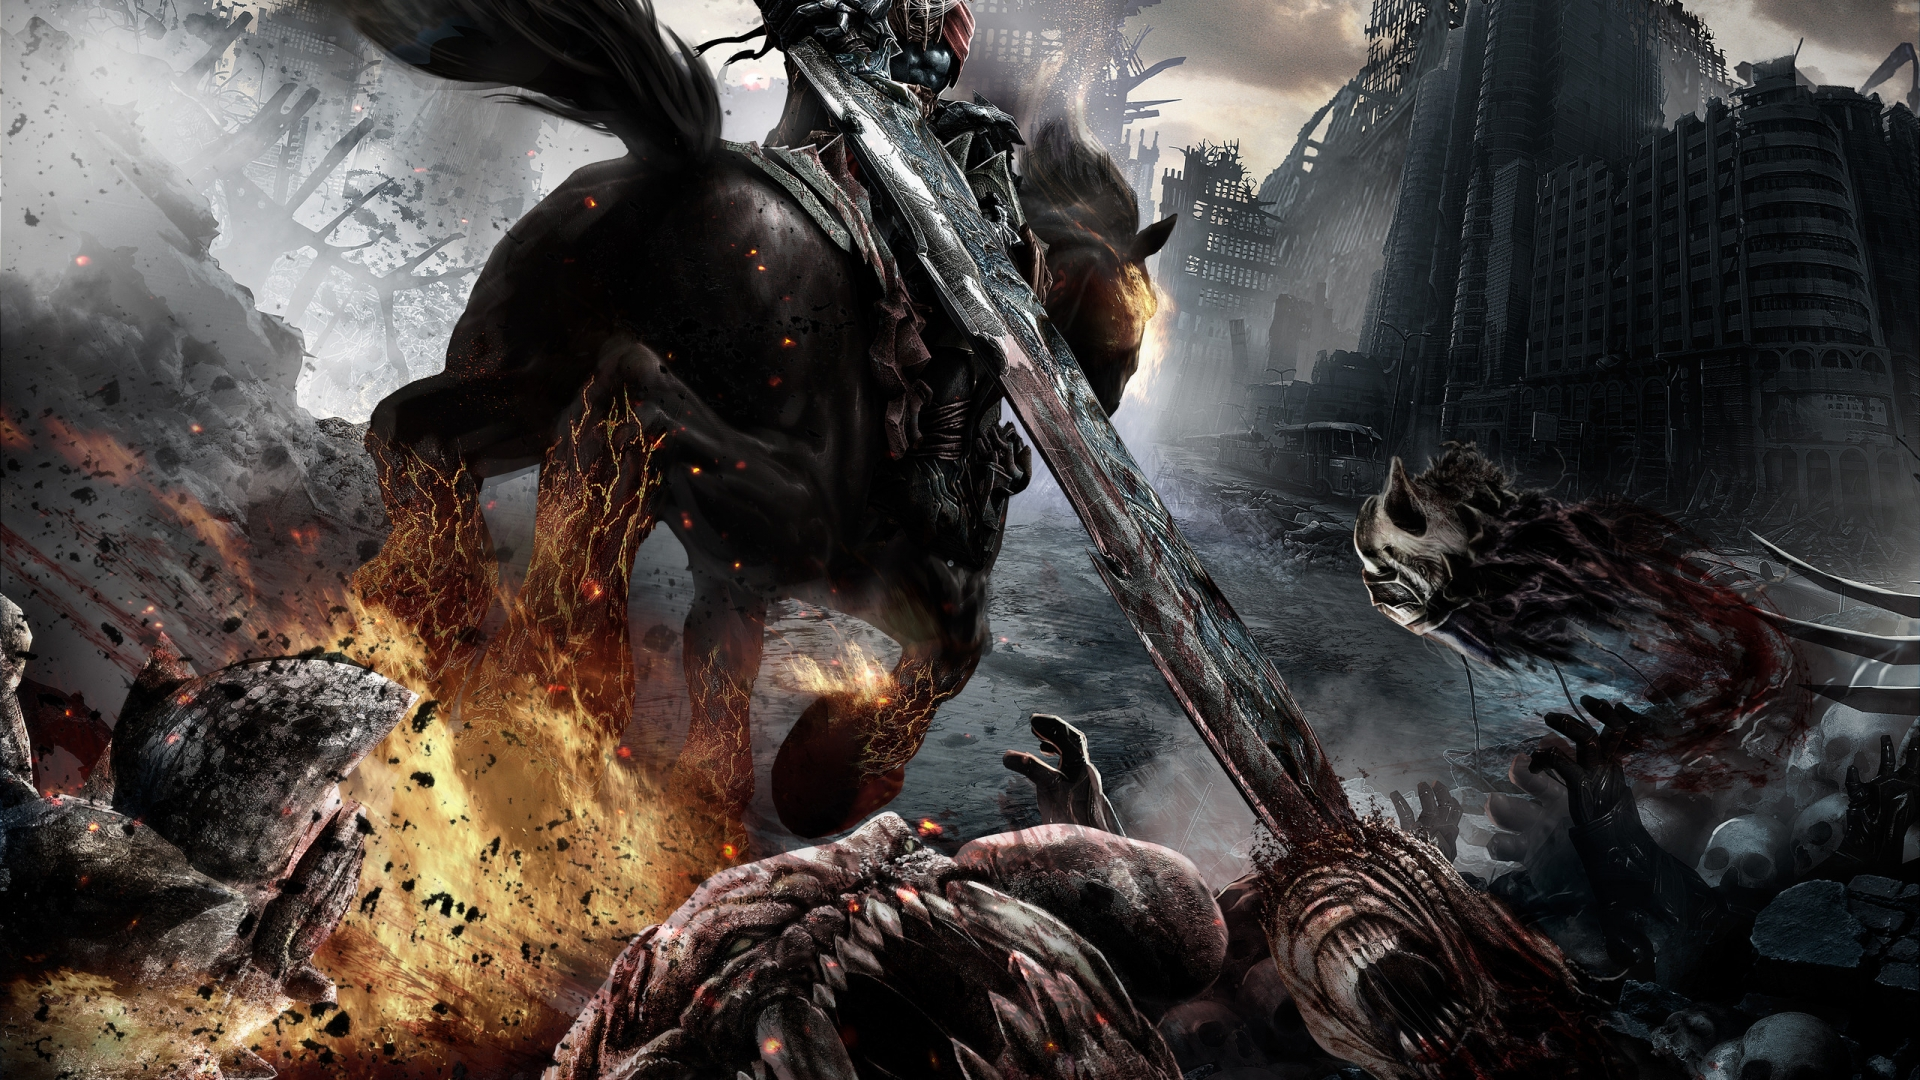 Darksiders Adventure Video Game   High Definition 1920x1080